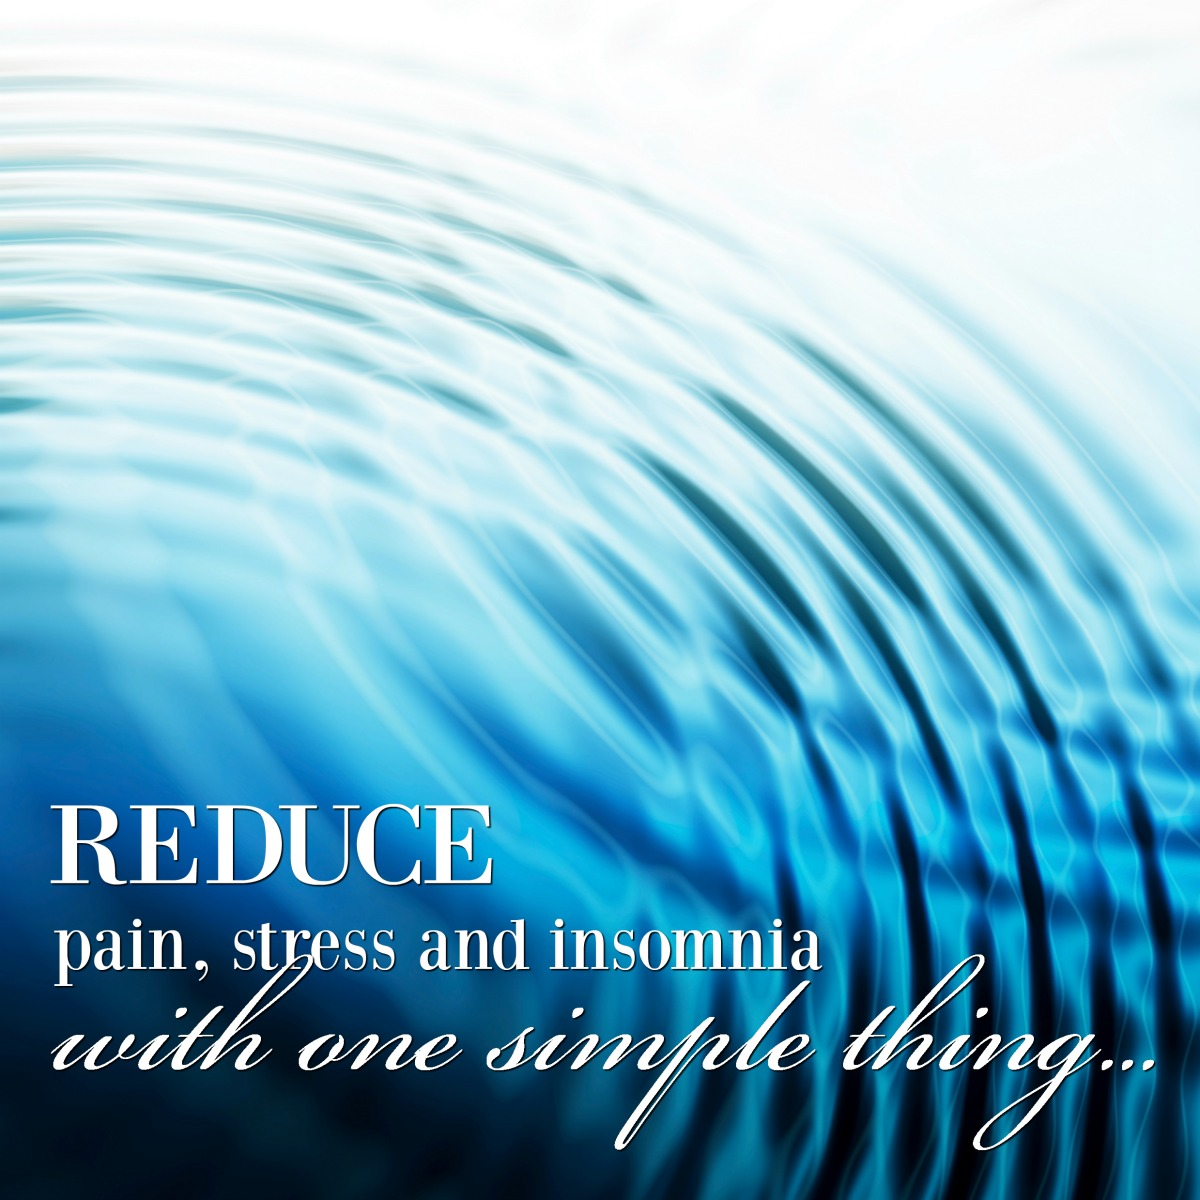 Reduce Pain, Stress & Insomnia with ONE SIMPLE THING